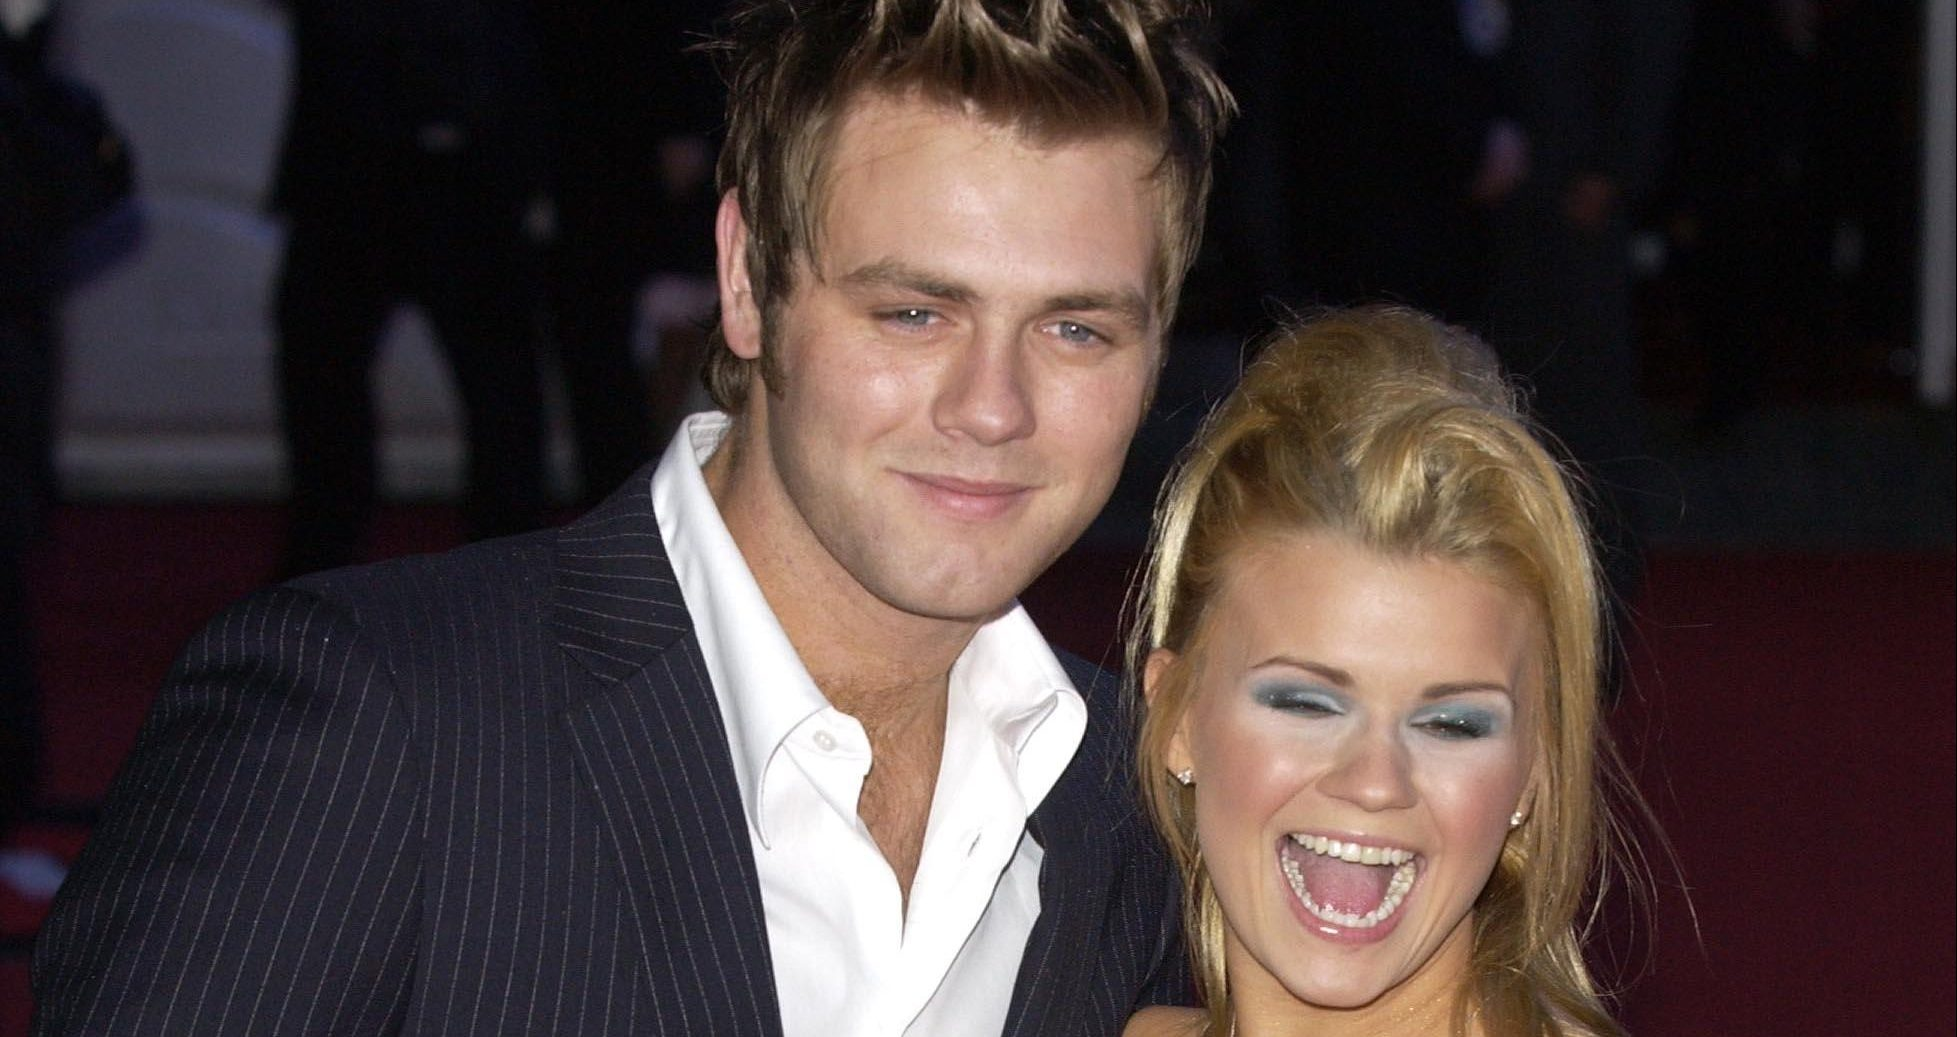 Kerry Katona reveals she and ex Brian McFadden have agreed to present a TV show together